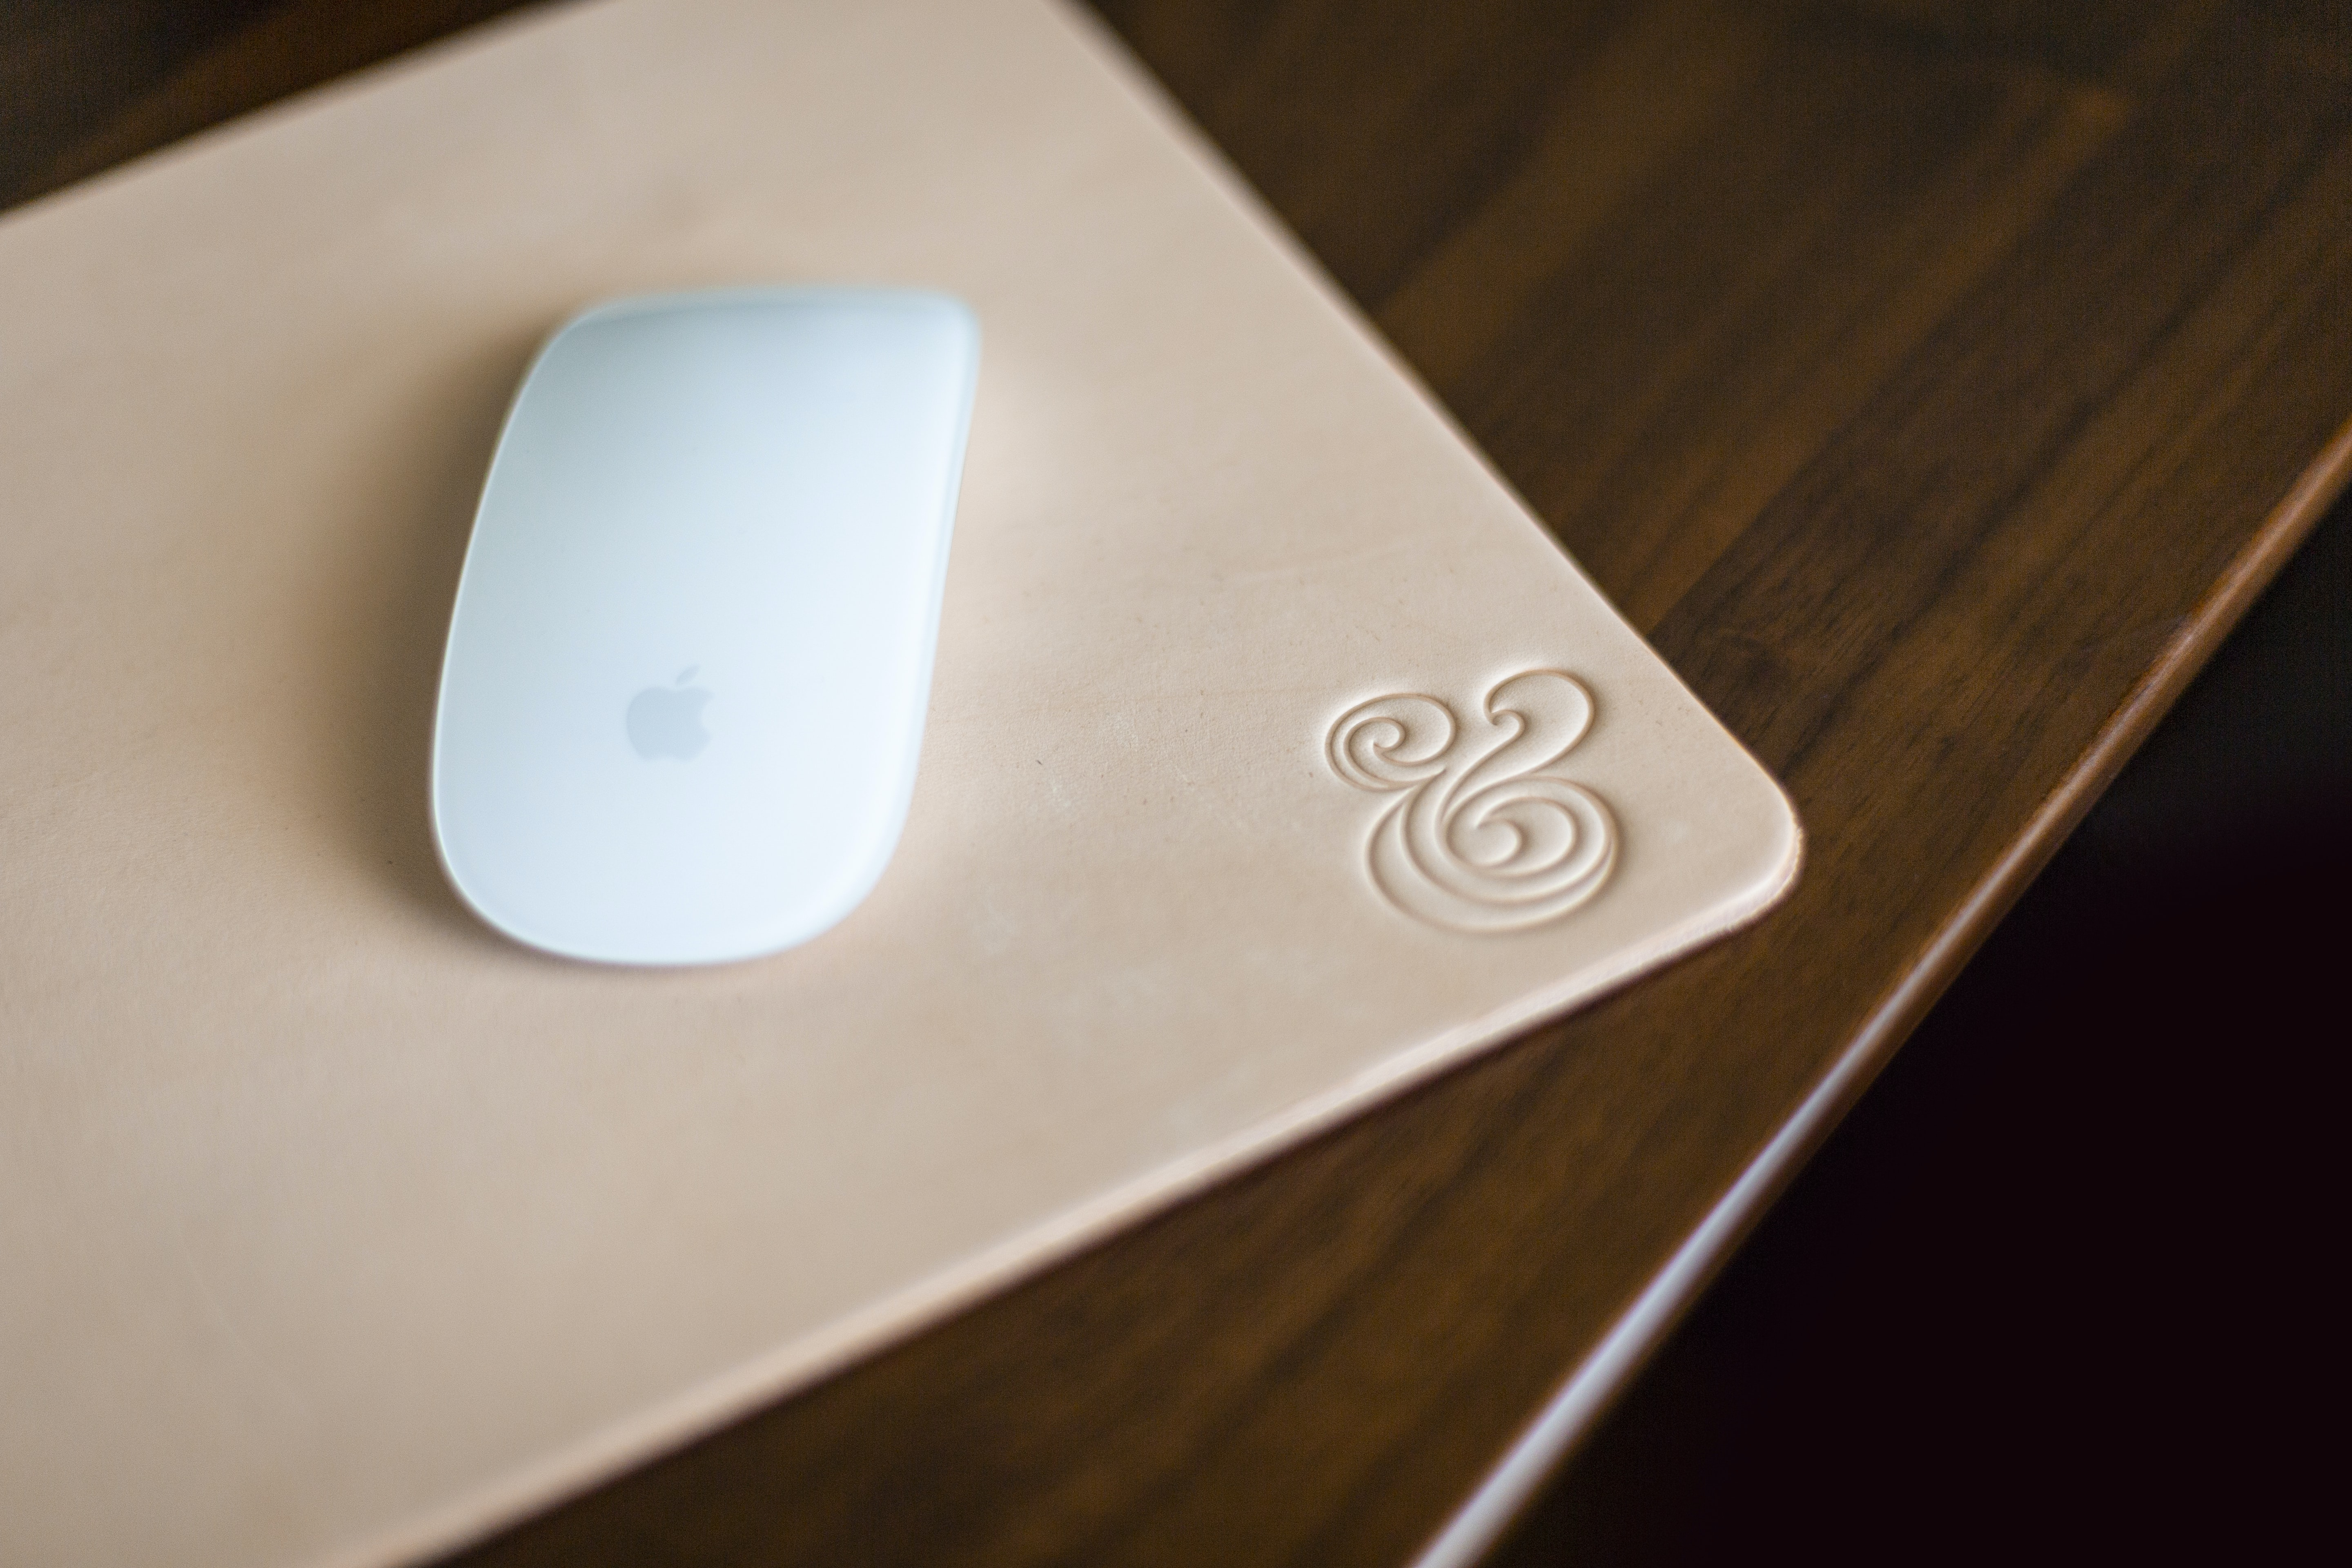 Magic Mouse on mat